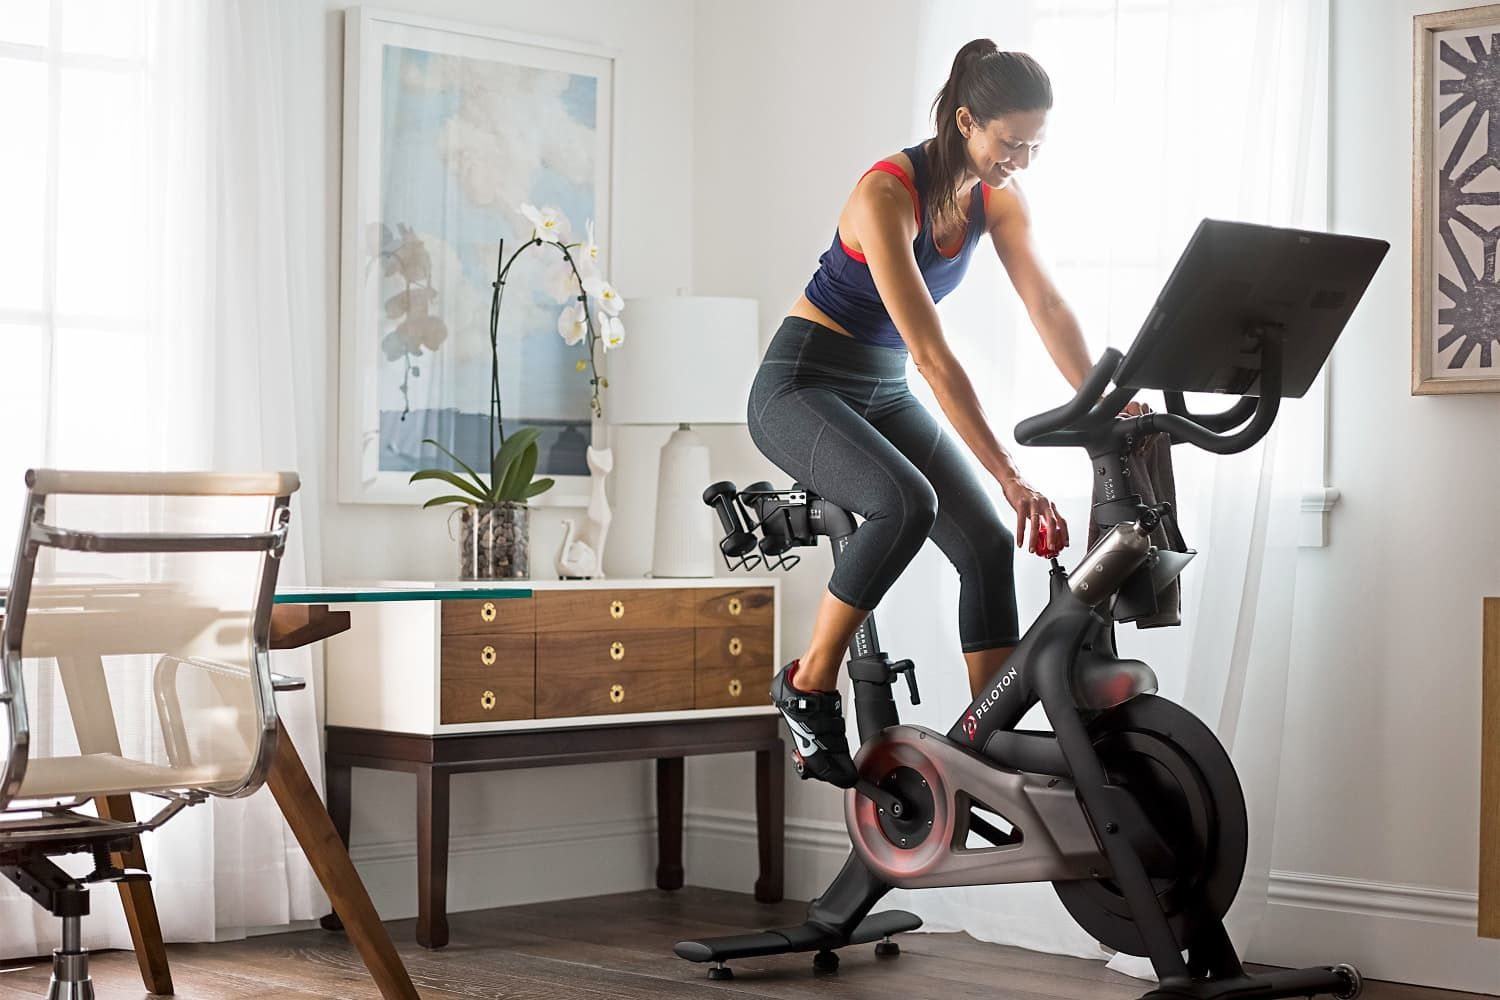 Since Every At Home Spin Bike Comes With Different Add Ons And Costs It Can Be Hard To Tell Upfront If The Investment Is Worth It